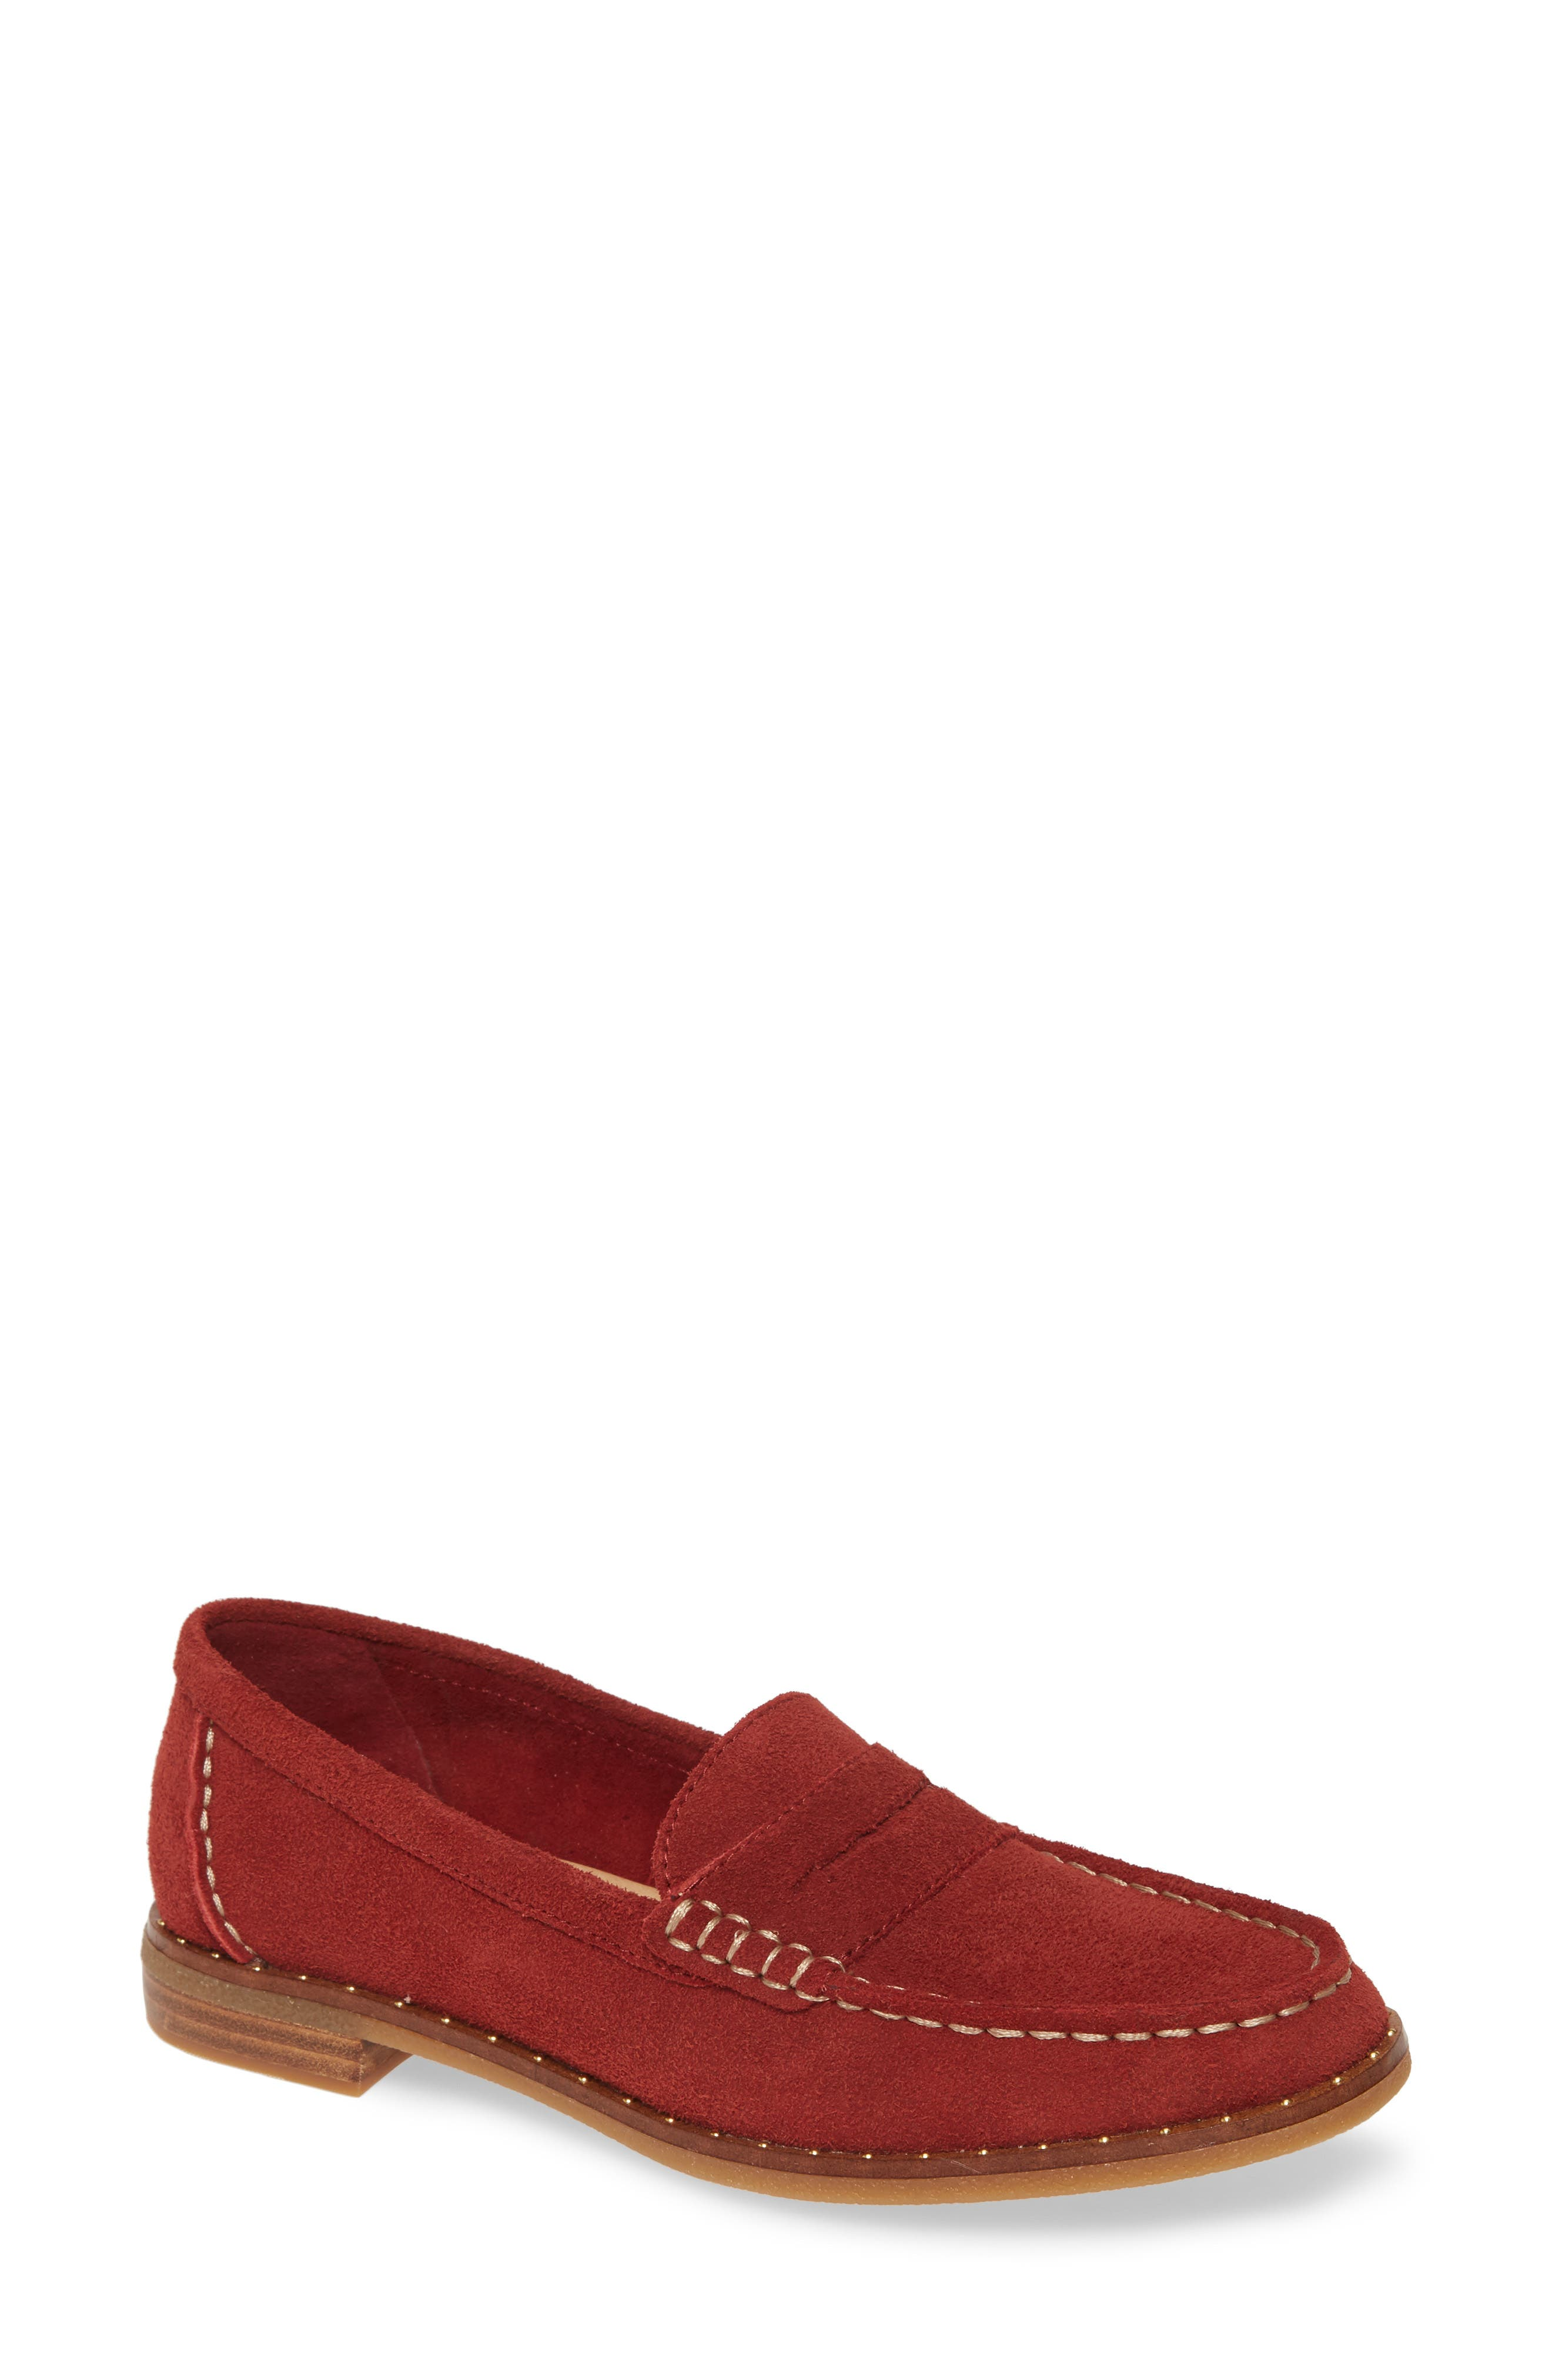 Sperry Seaport Penny Loafer (Women)